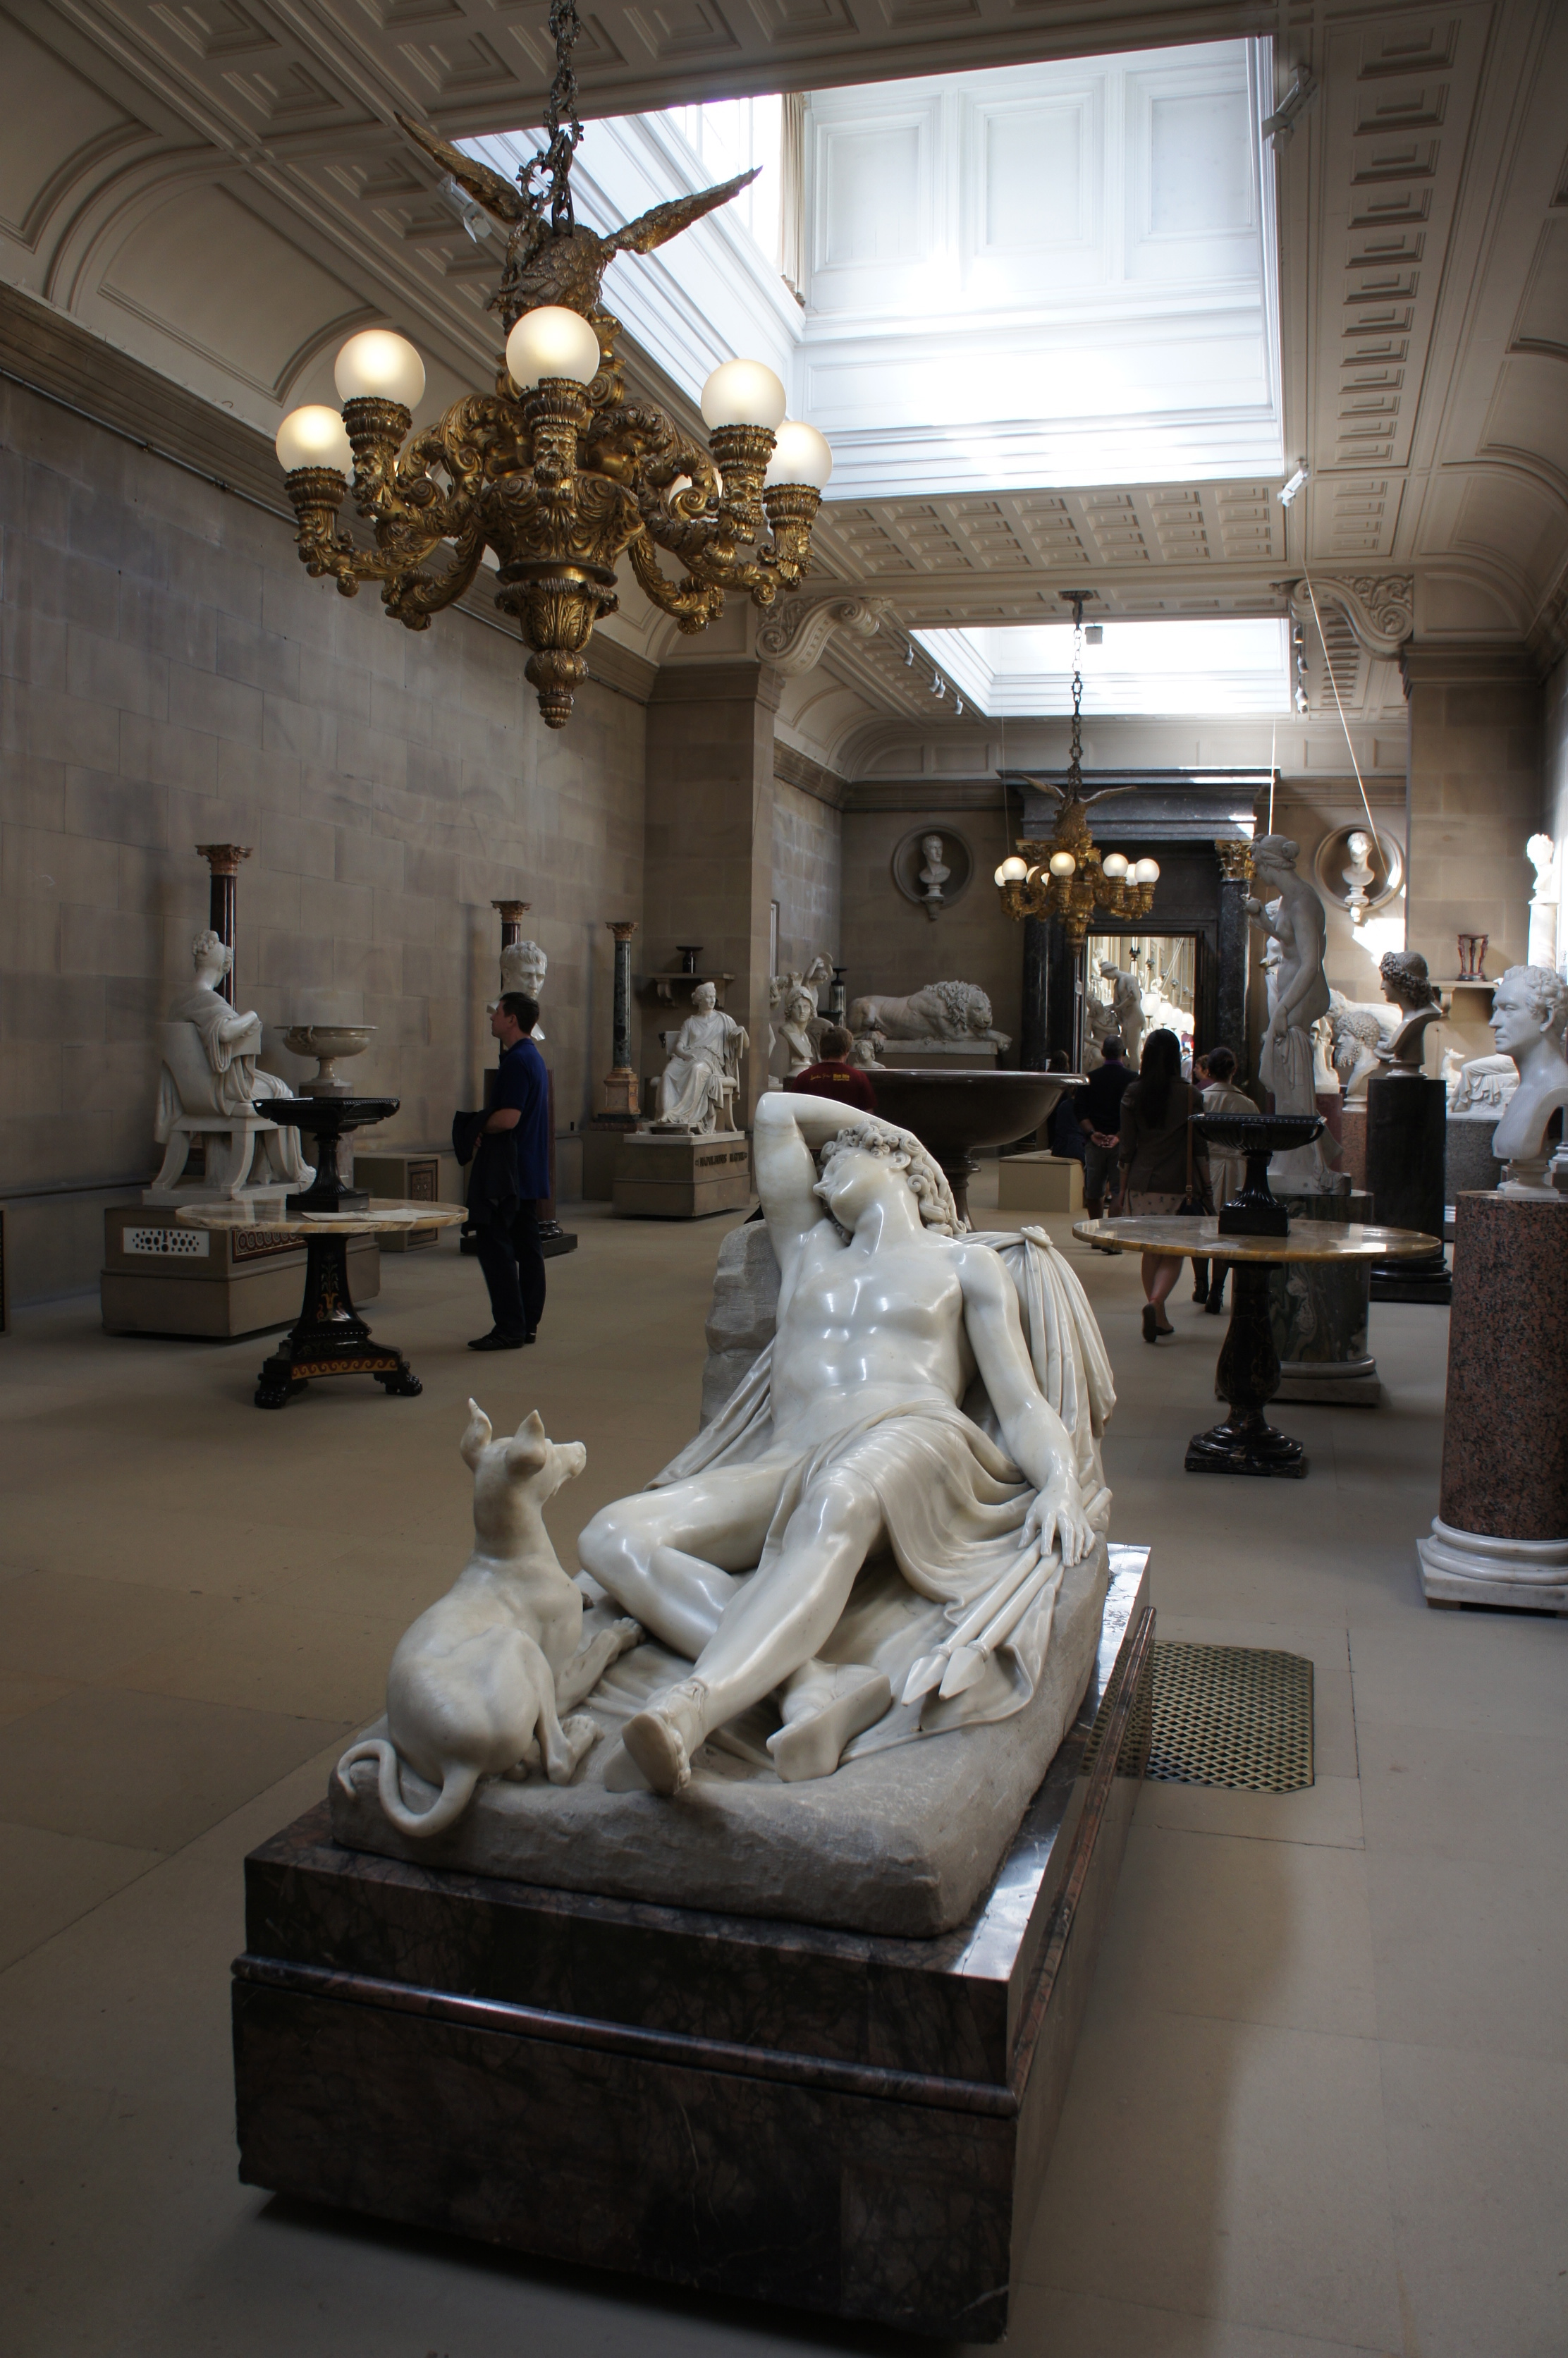 The sculpture room inside Chatsworth is recognisable from the movie, although without the bust of Mr Darcy.